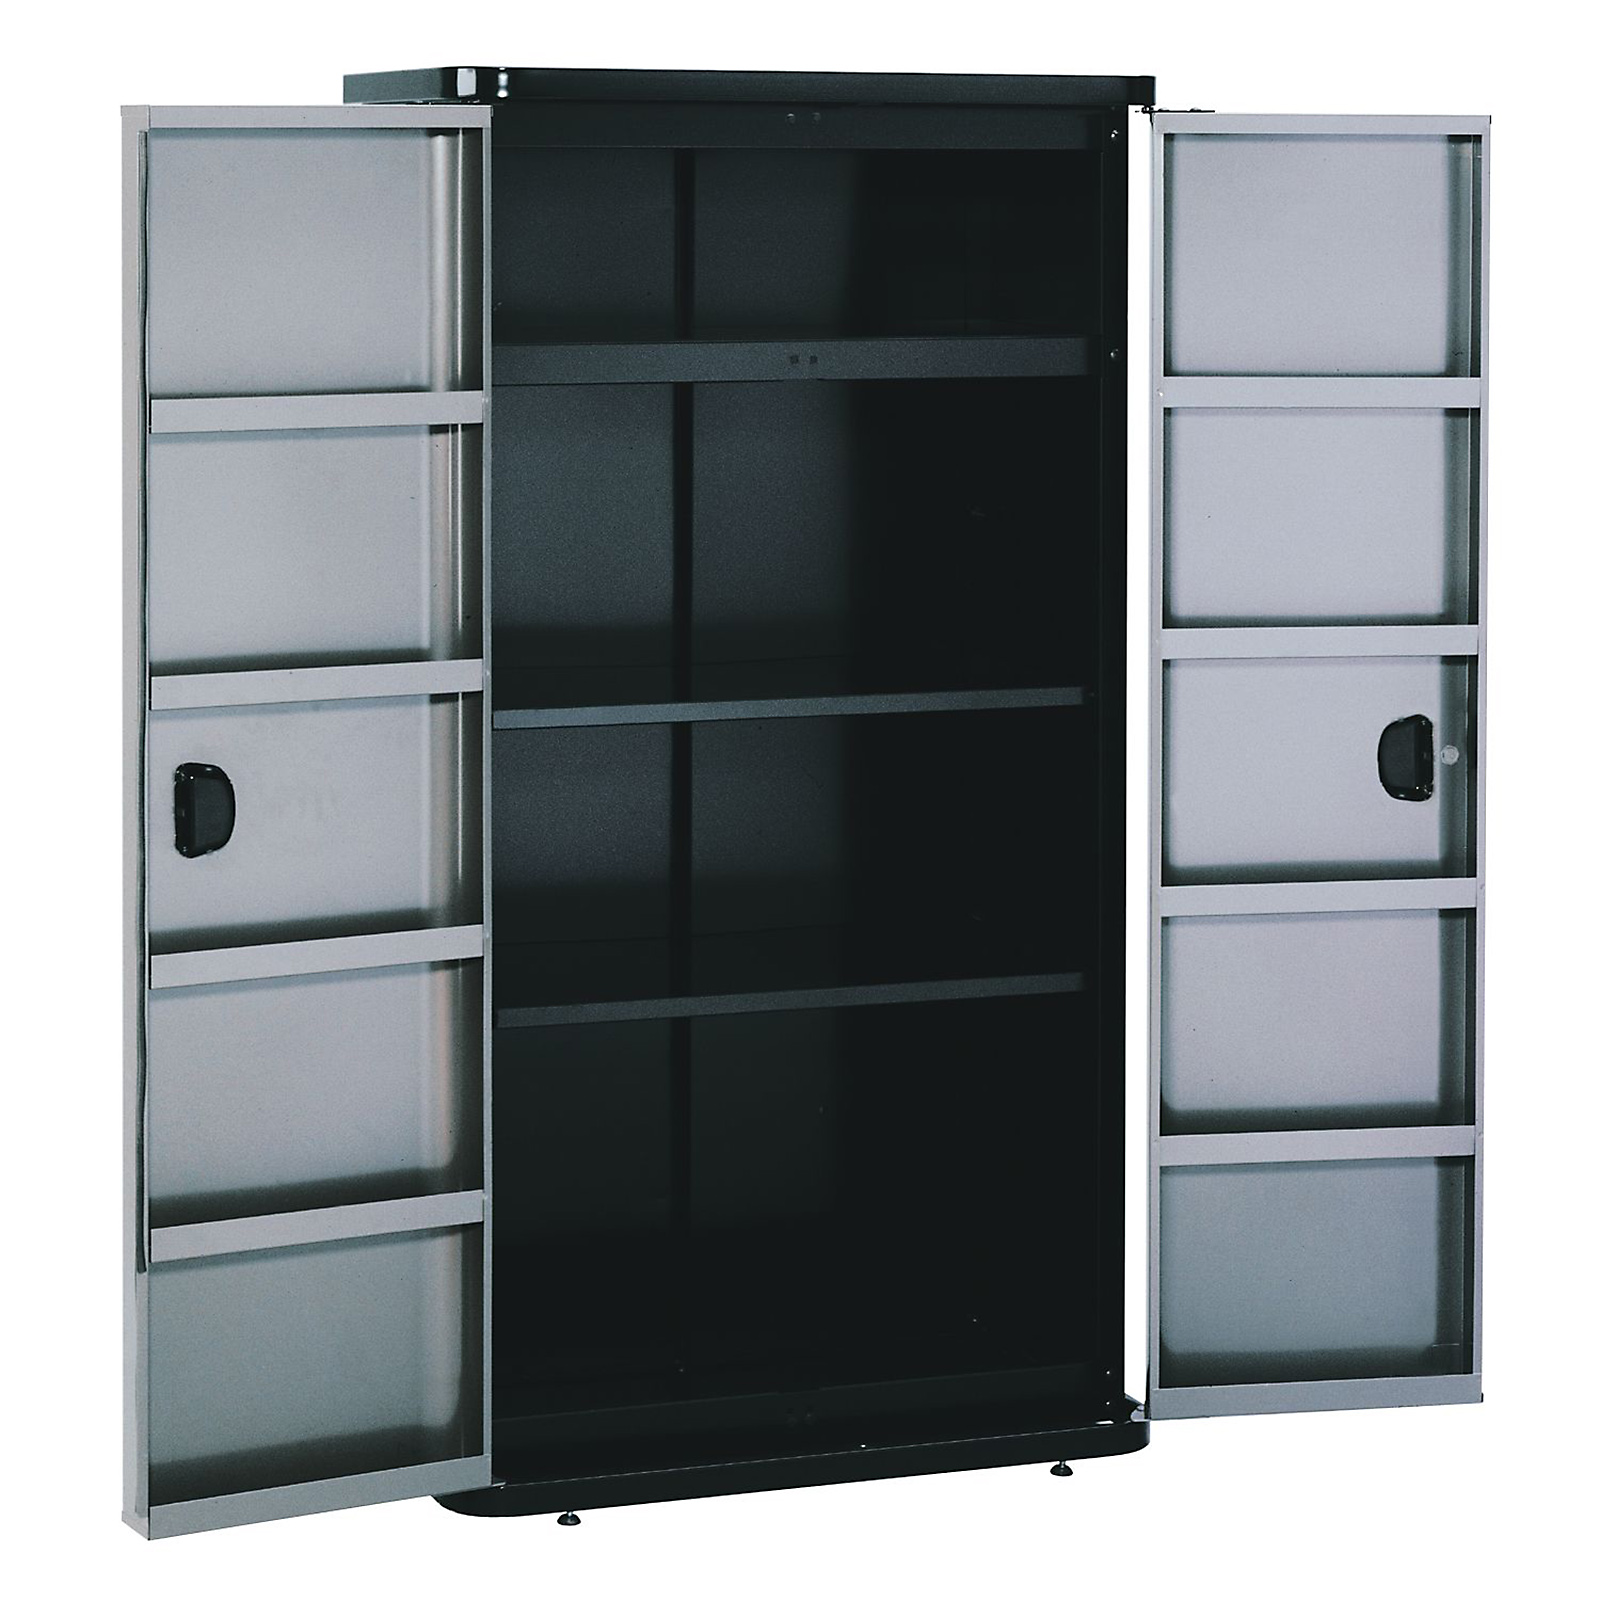 "Craftsman Professional 36"" Wide Floor Cabinet - Platinum"